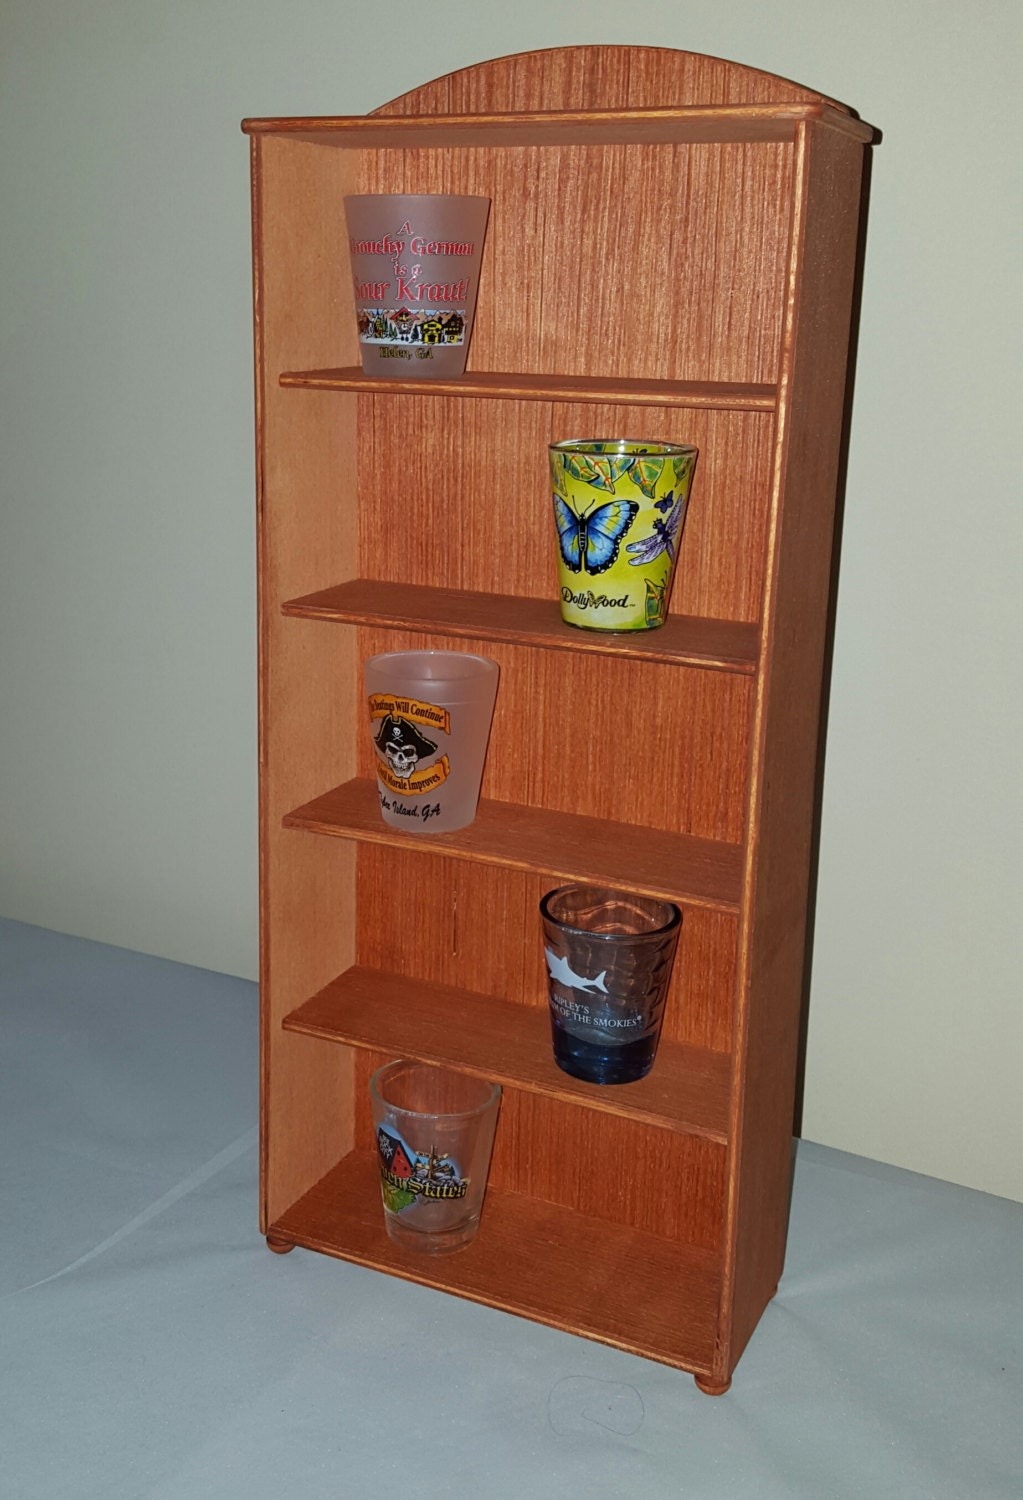 Display Shelves For Collectibles >> Stained Display Shelves Collectible Display Collectible Shelves Wooden Shelf Tabletop Display Craft Show Display Country Decor